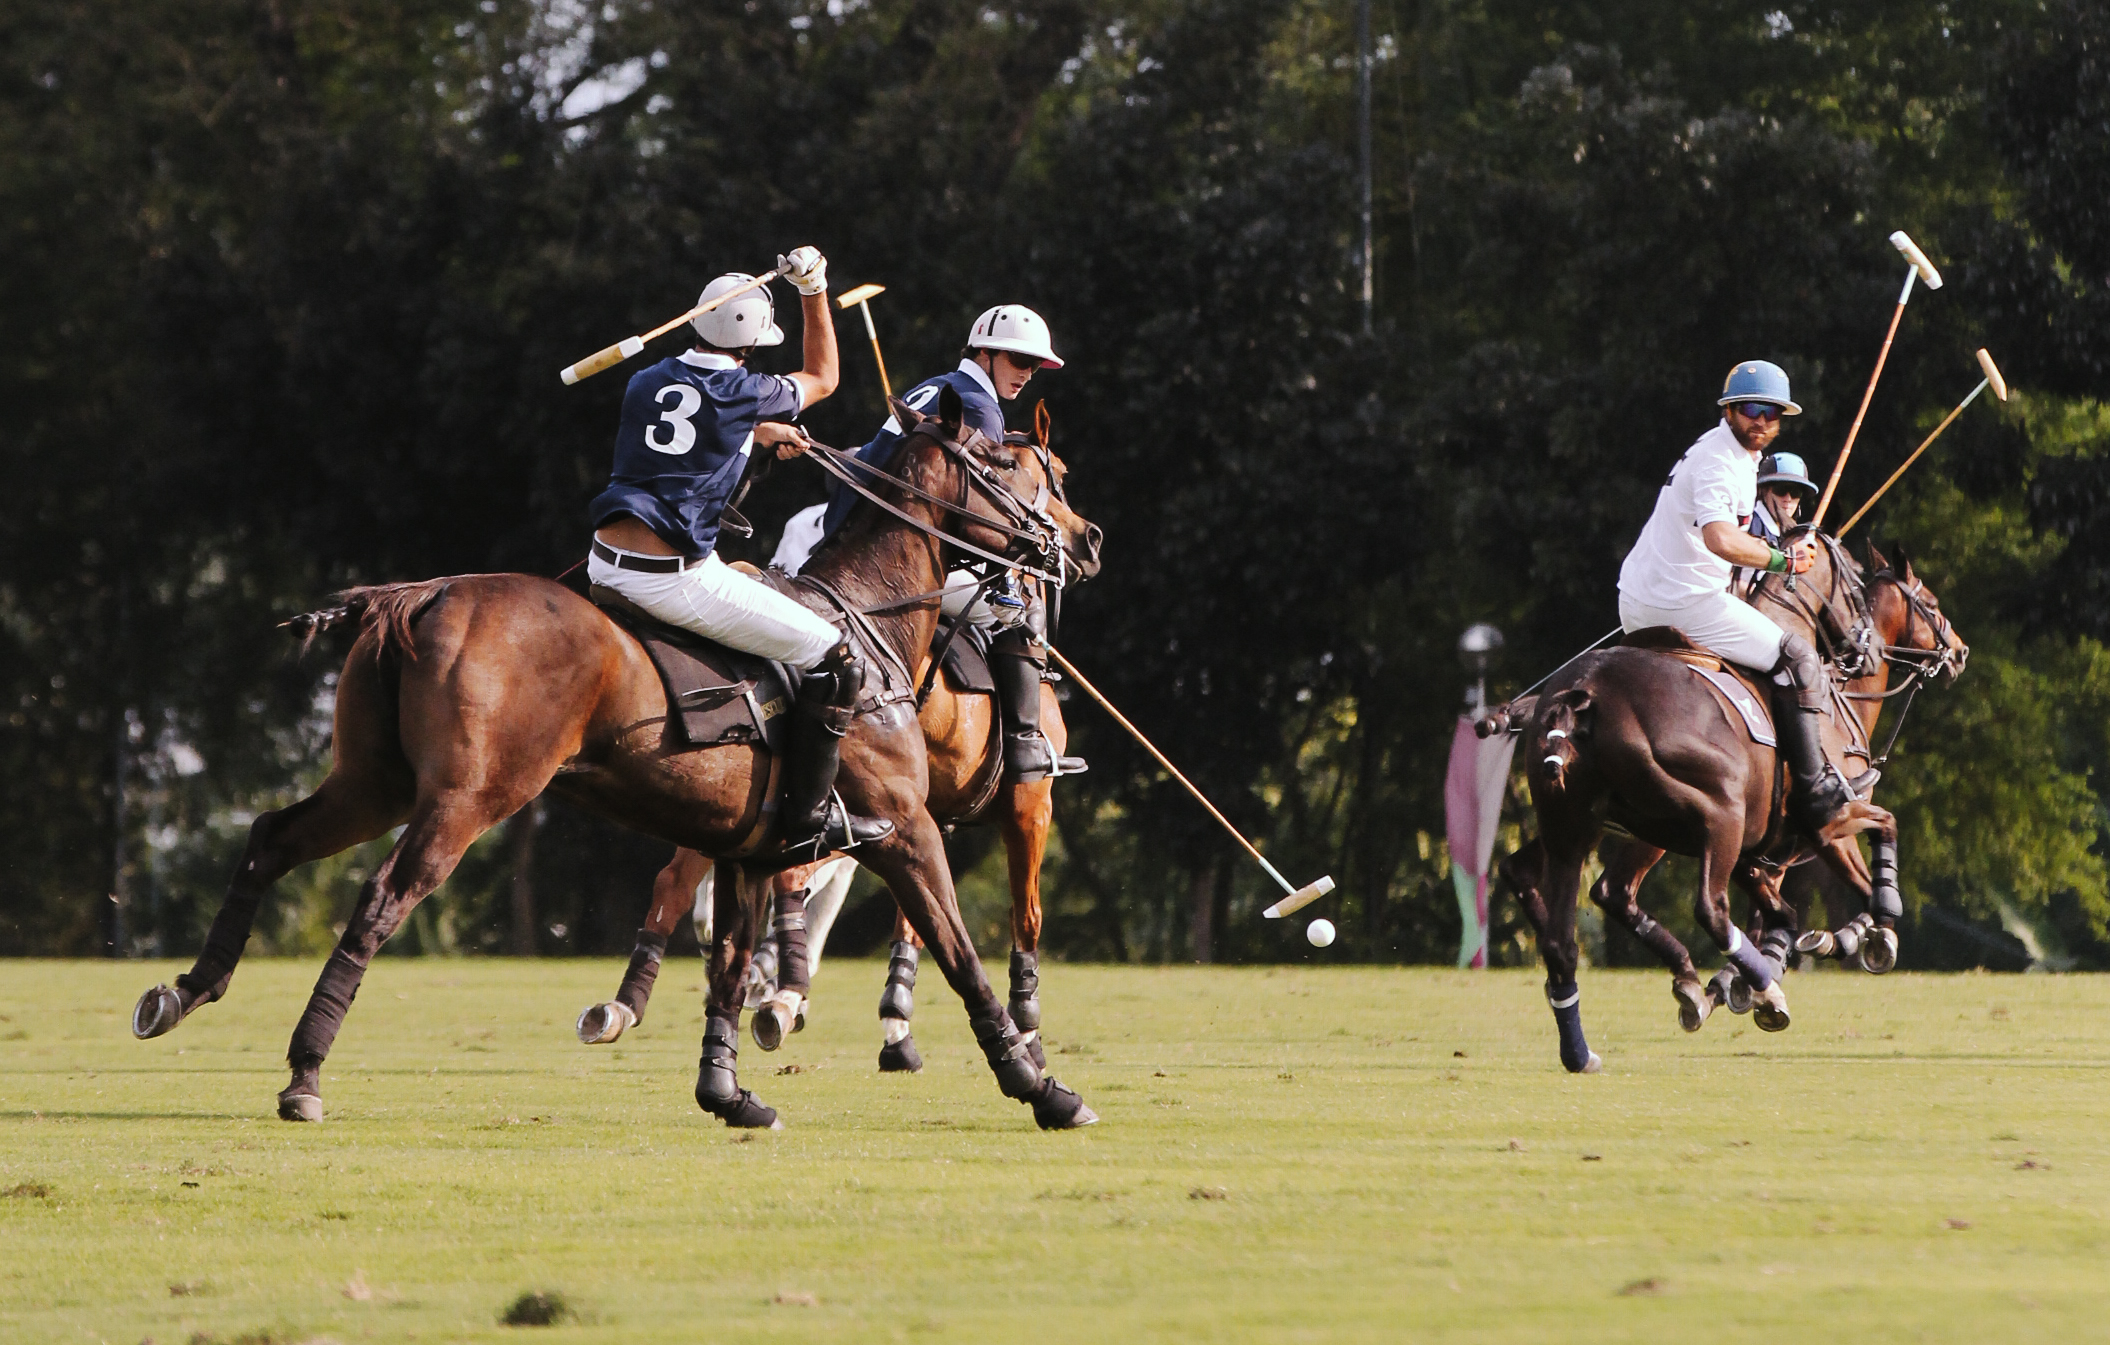 FILA Polo Cup 2017_High Goal-3.jpg